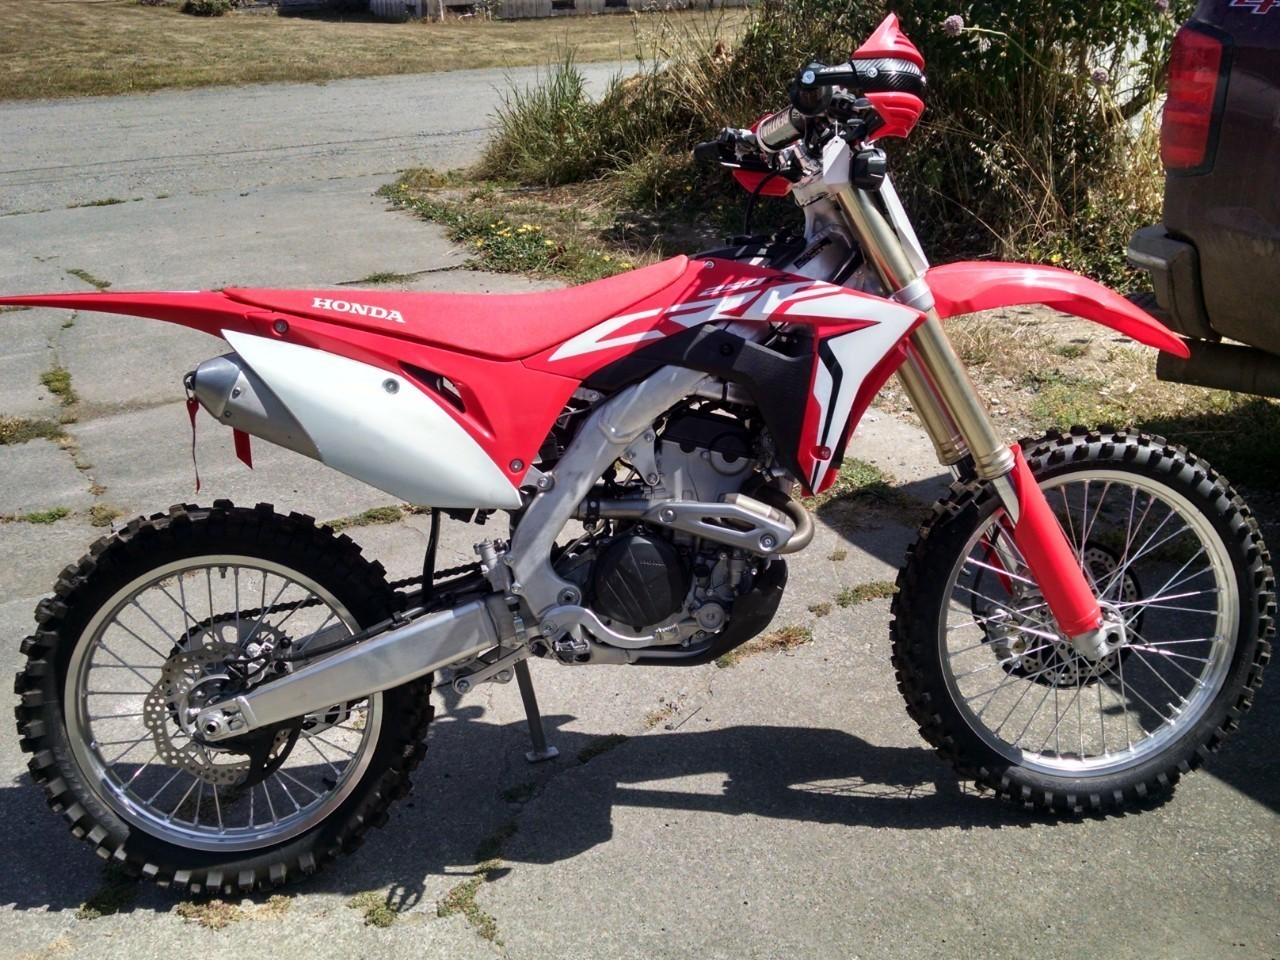 Crf110 For Sale - Honda Motorcycles - Cycle Trader